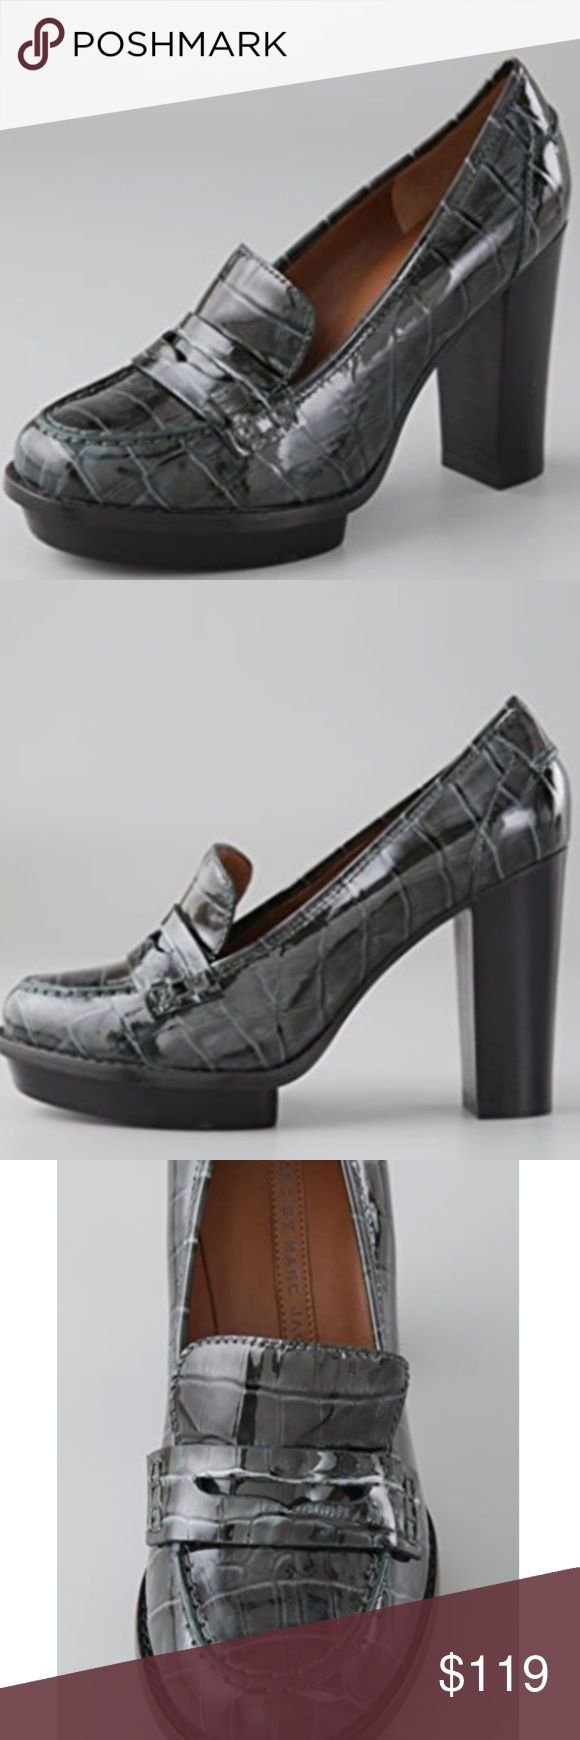 """NEW Marc Jacobs Platform High Heel Loafers Croc Marc by Marc Jacobs. A preppy classic with a cool Marc update, these croc-embossed patent-leather loafers feature a 3/4"""" inset platform and a 3.75"""" stacked heel. Leather sole. Size 40/9.5. Although I feel they may fit 9 better. Super sexy shoes. Greyish-green. Brand new, never worn. Marc Jacobs Shoes Heels"""